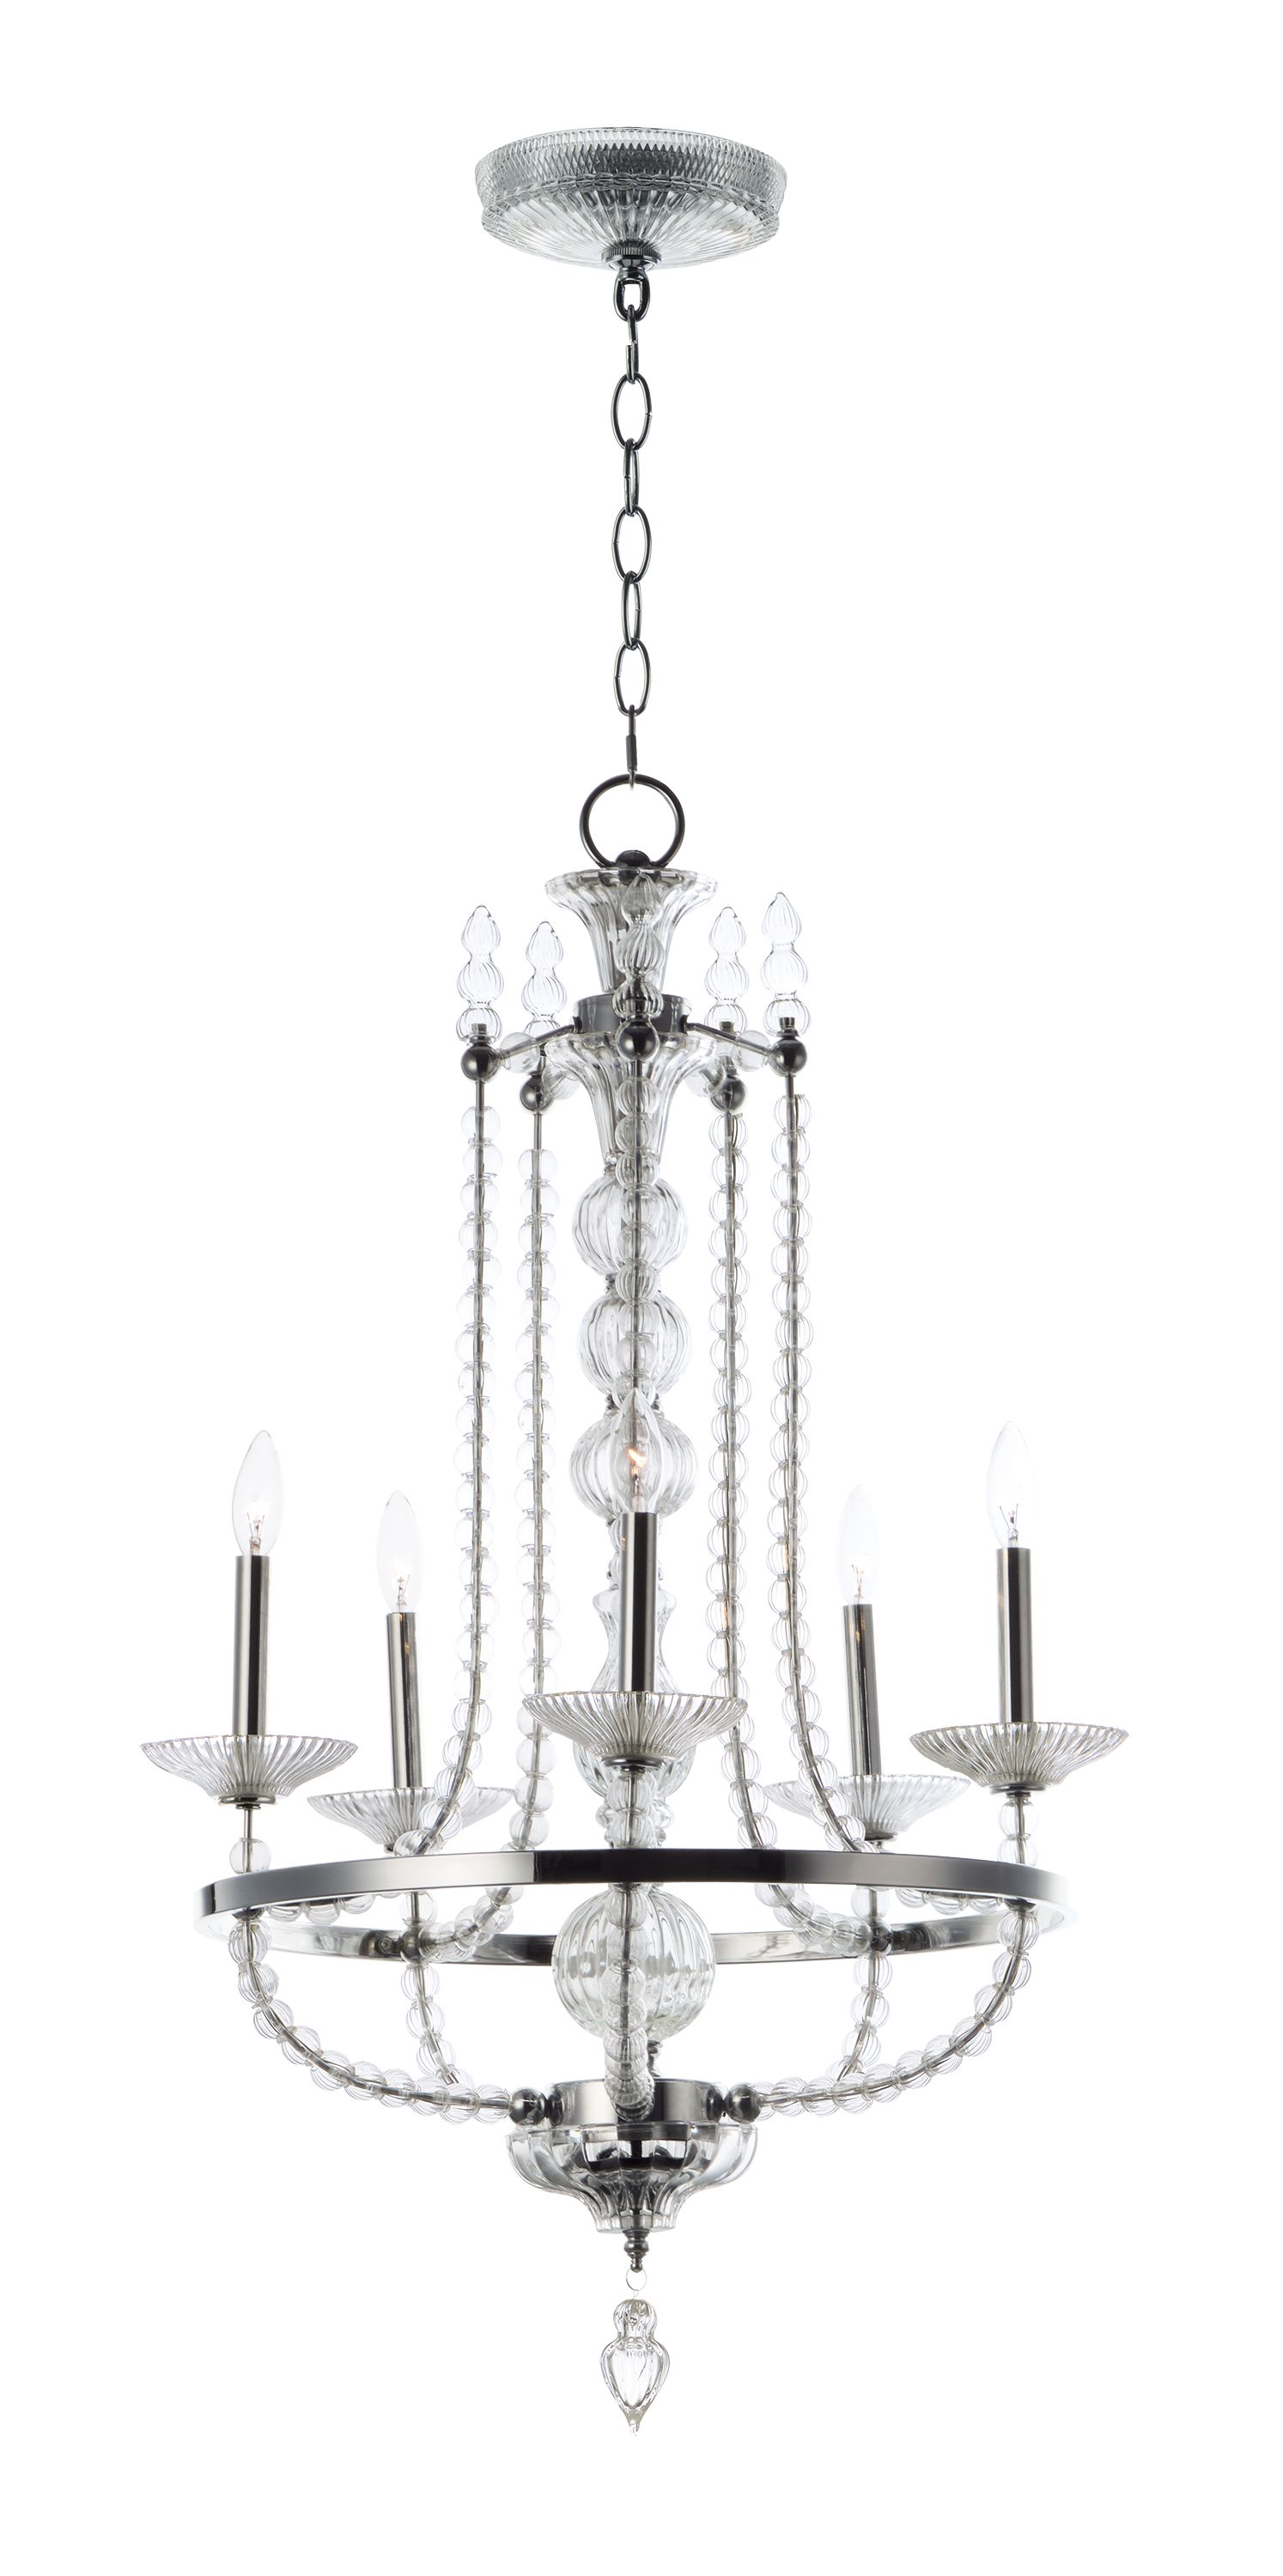 Pin By Homelighter The On Maxim Lighting 5 Light Chandelier